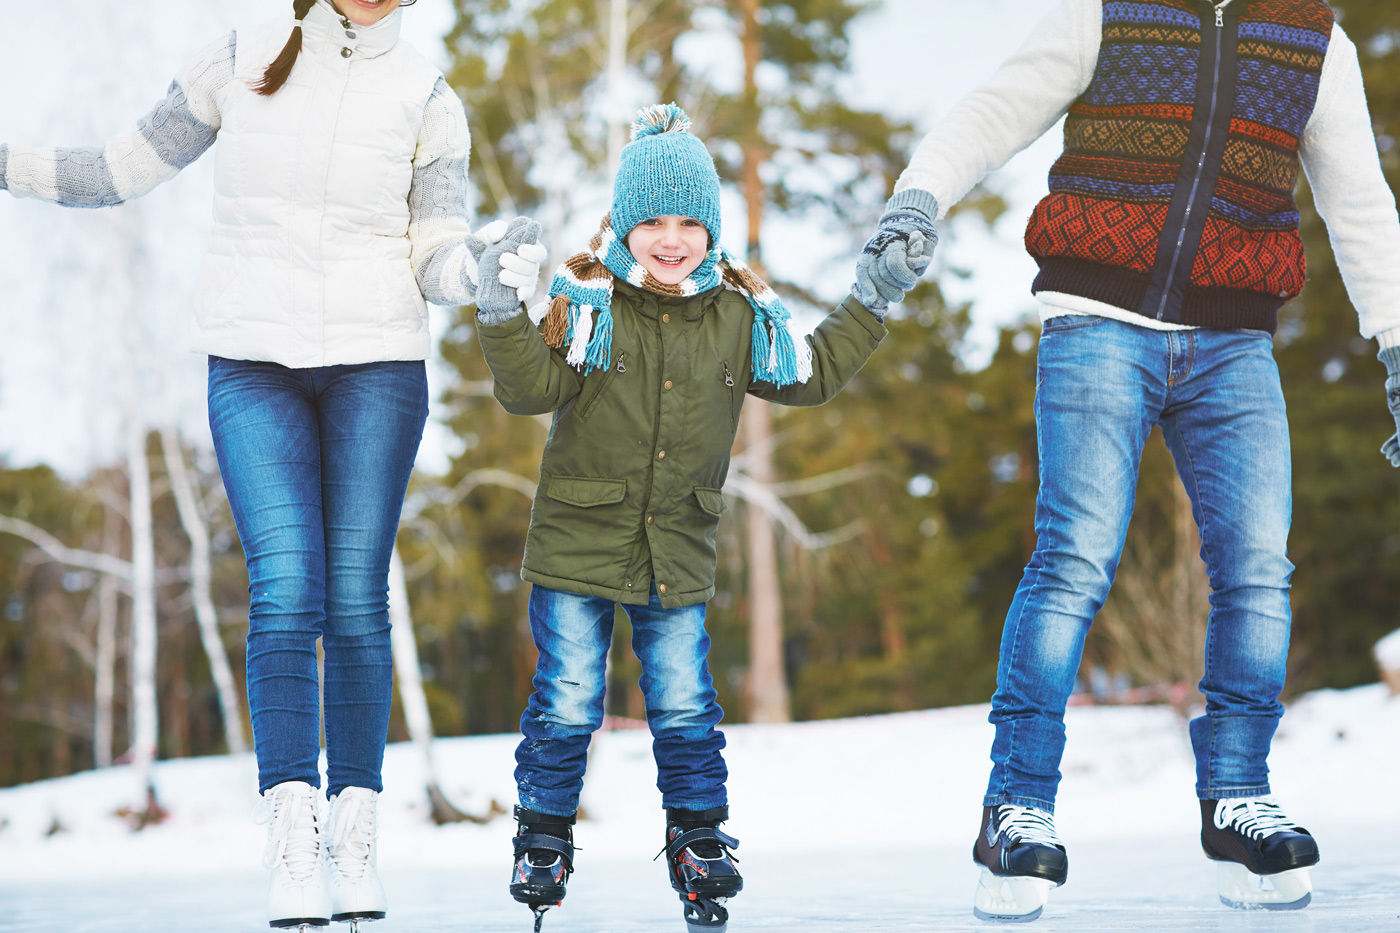 Go for a skate on Family Day at Cameco Meewasin Skating Rink, a short drive from our Saskatoon airport hotel.